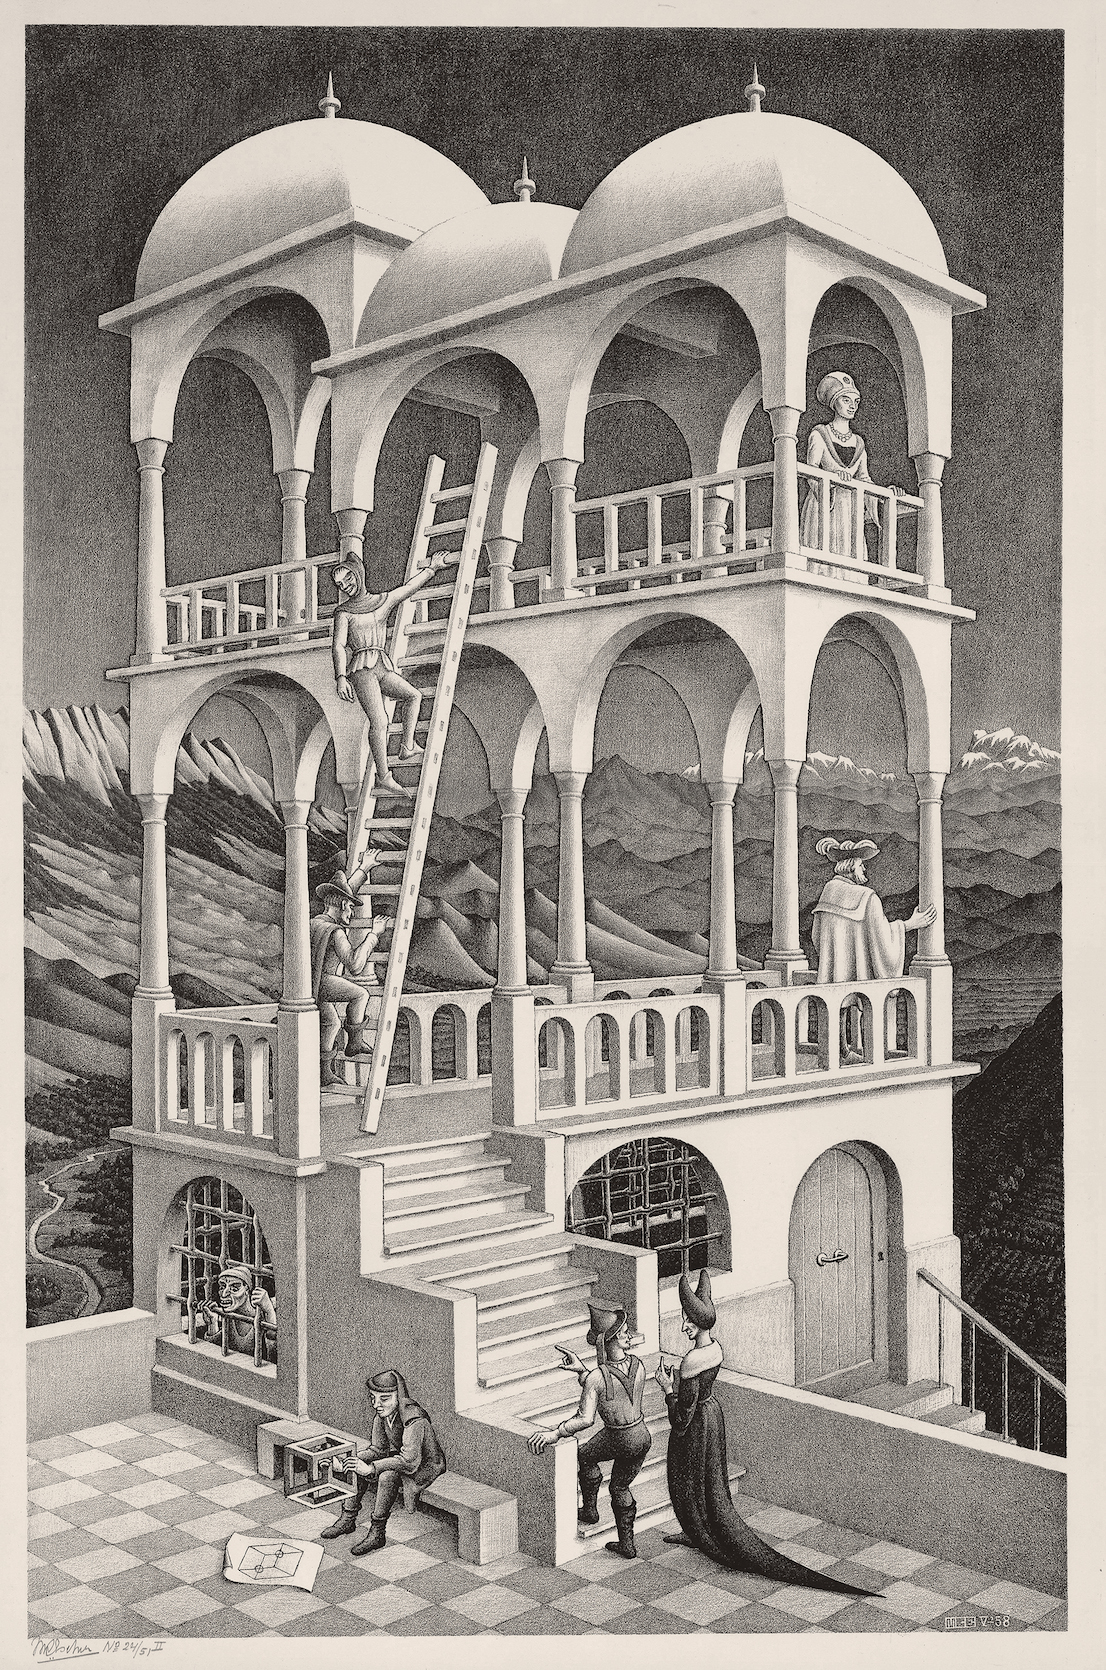 the life and works of maurits cornelis escher Overview the dutch artist maurits c escher (1898-1972) was a draftsman, book illustrator, tapestry designer, and muralist, but his primary work was as a printmaker.